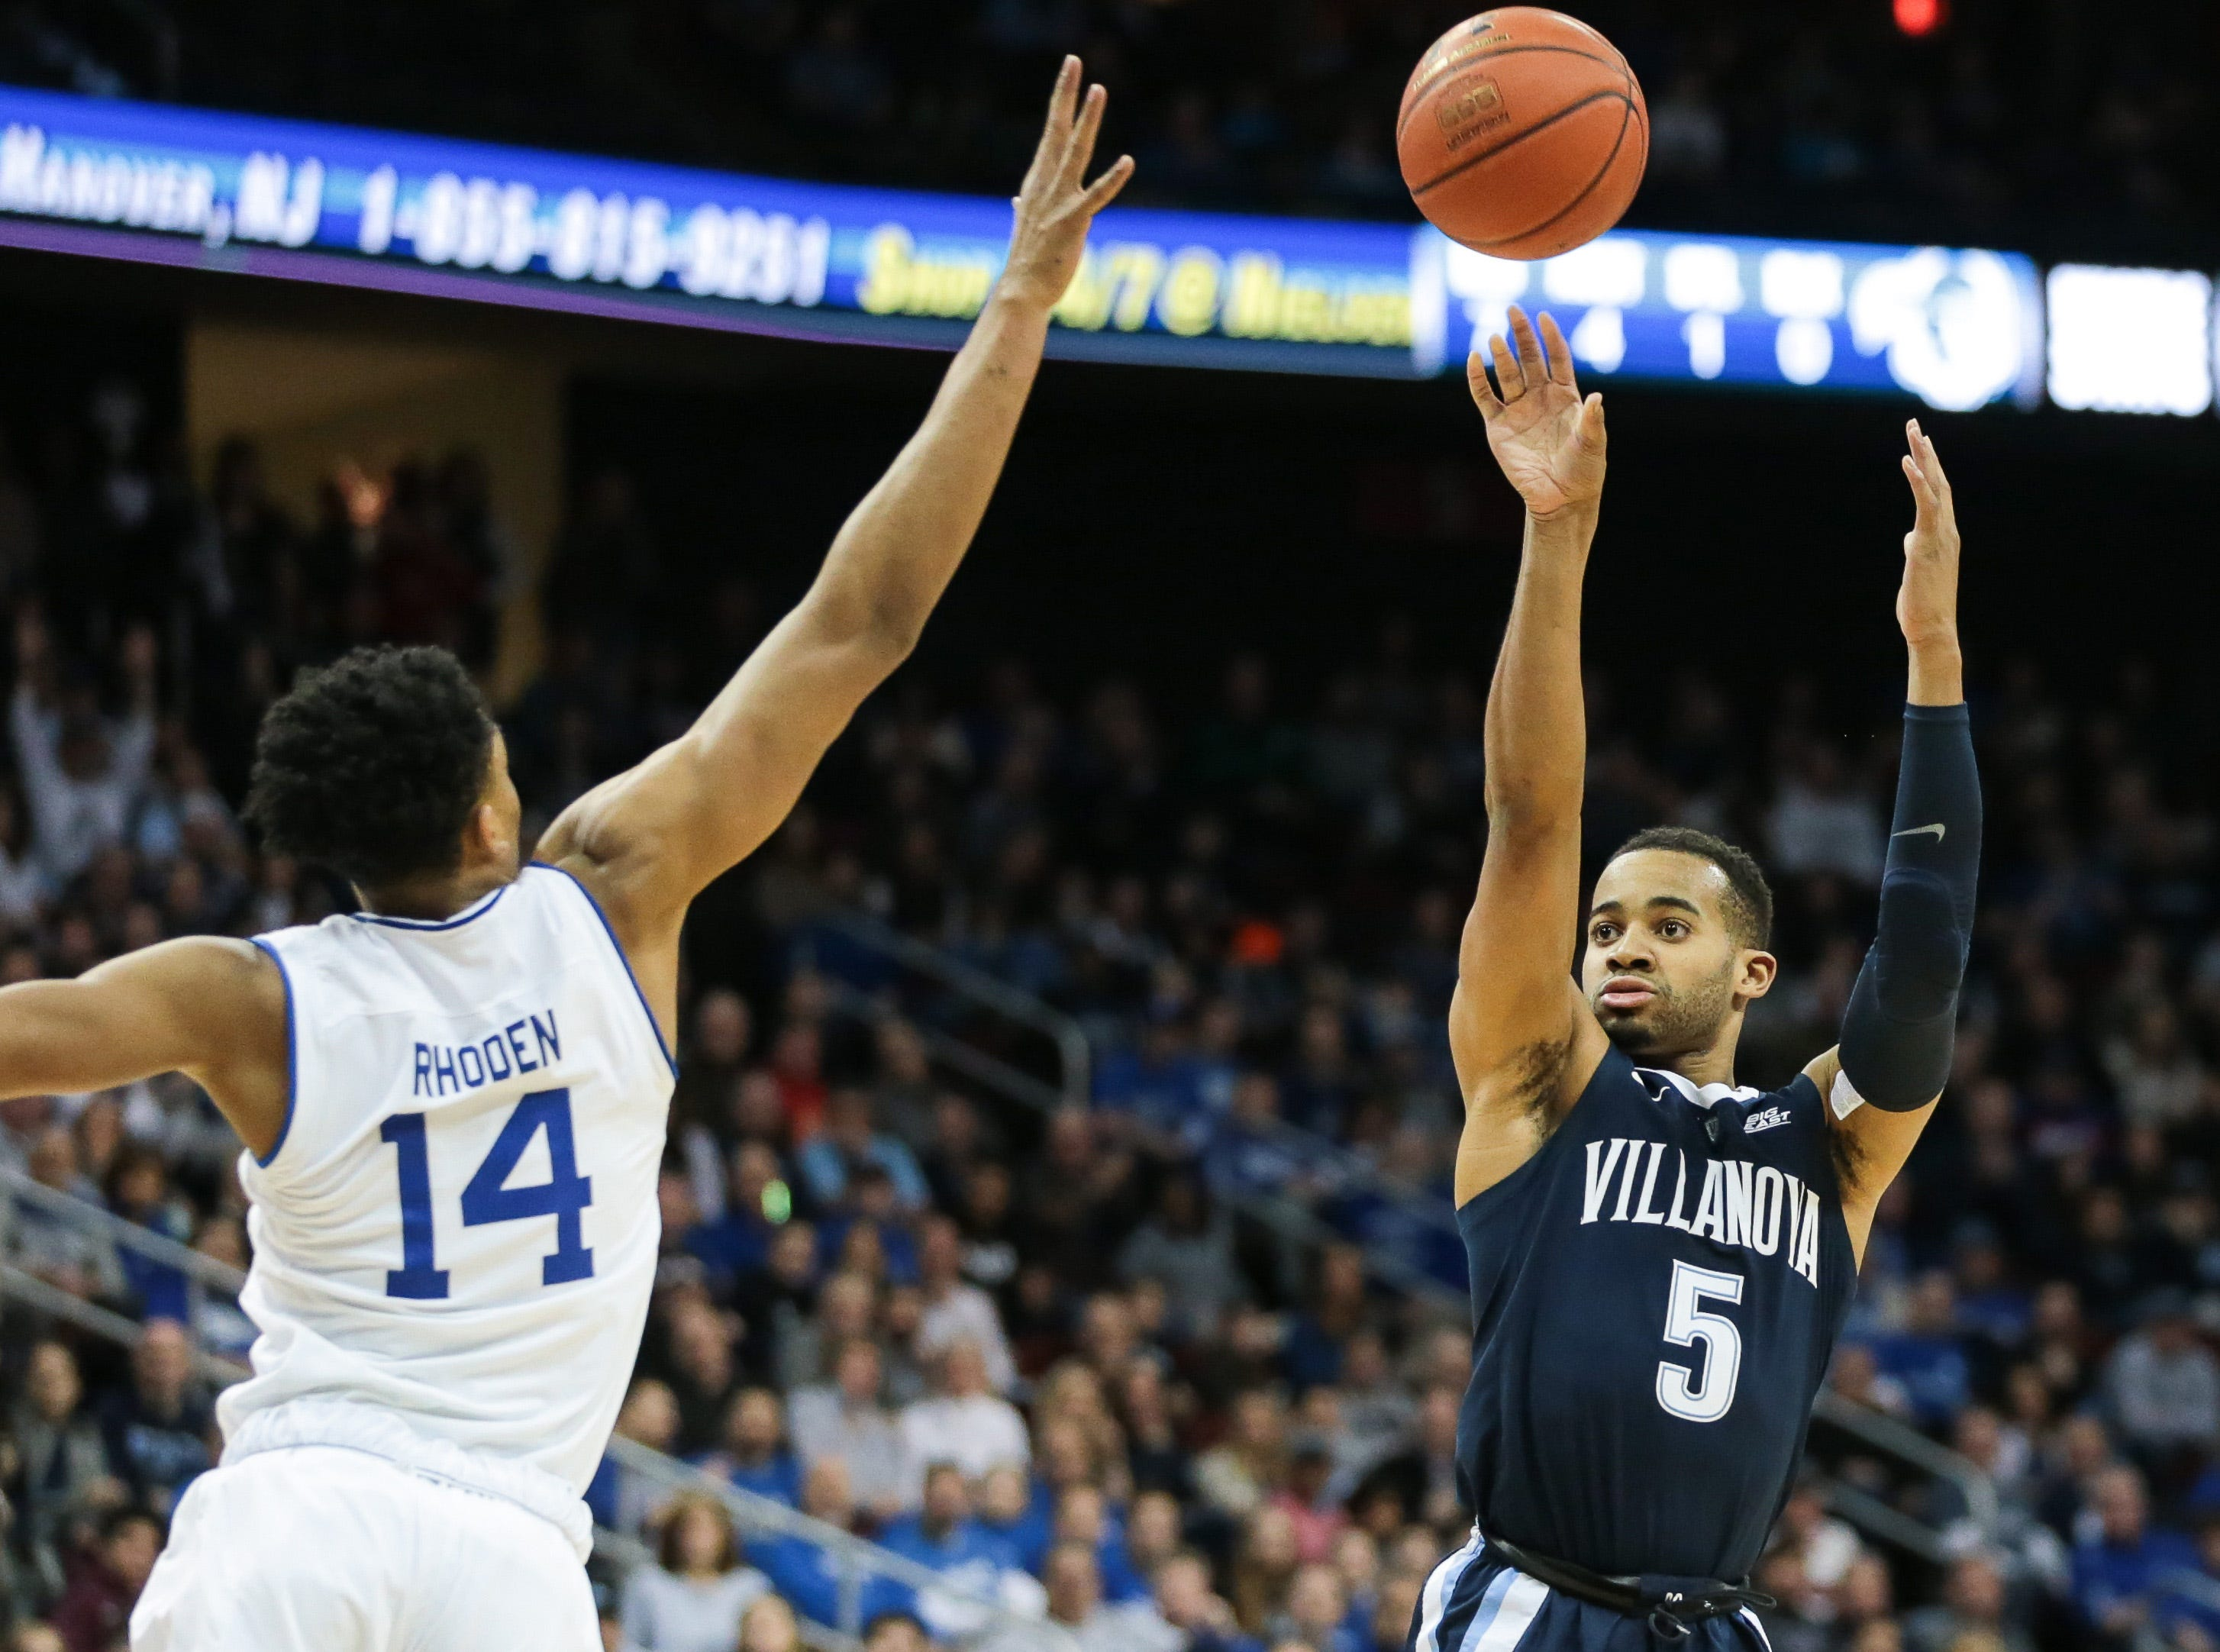 Villanova Wildcats guard Phil Booth (5) shoots the ball over Seton Hall Pirates guard Jared Rhoden (14) during the first half at Prudential Center.